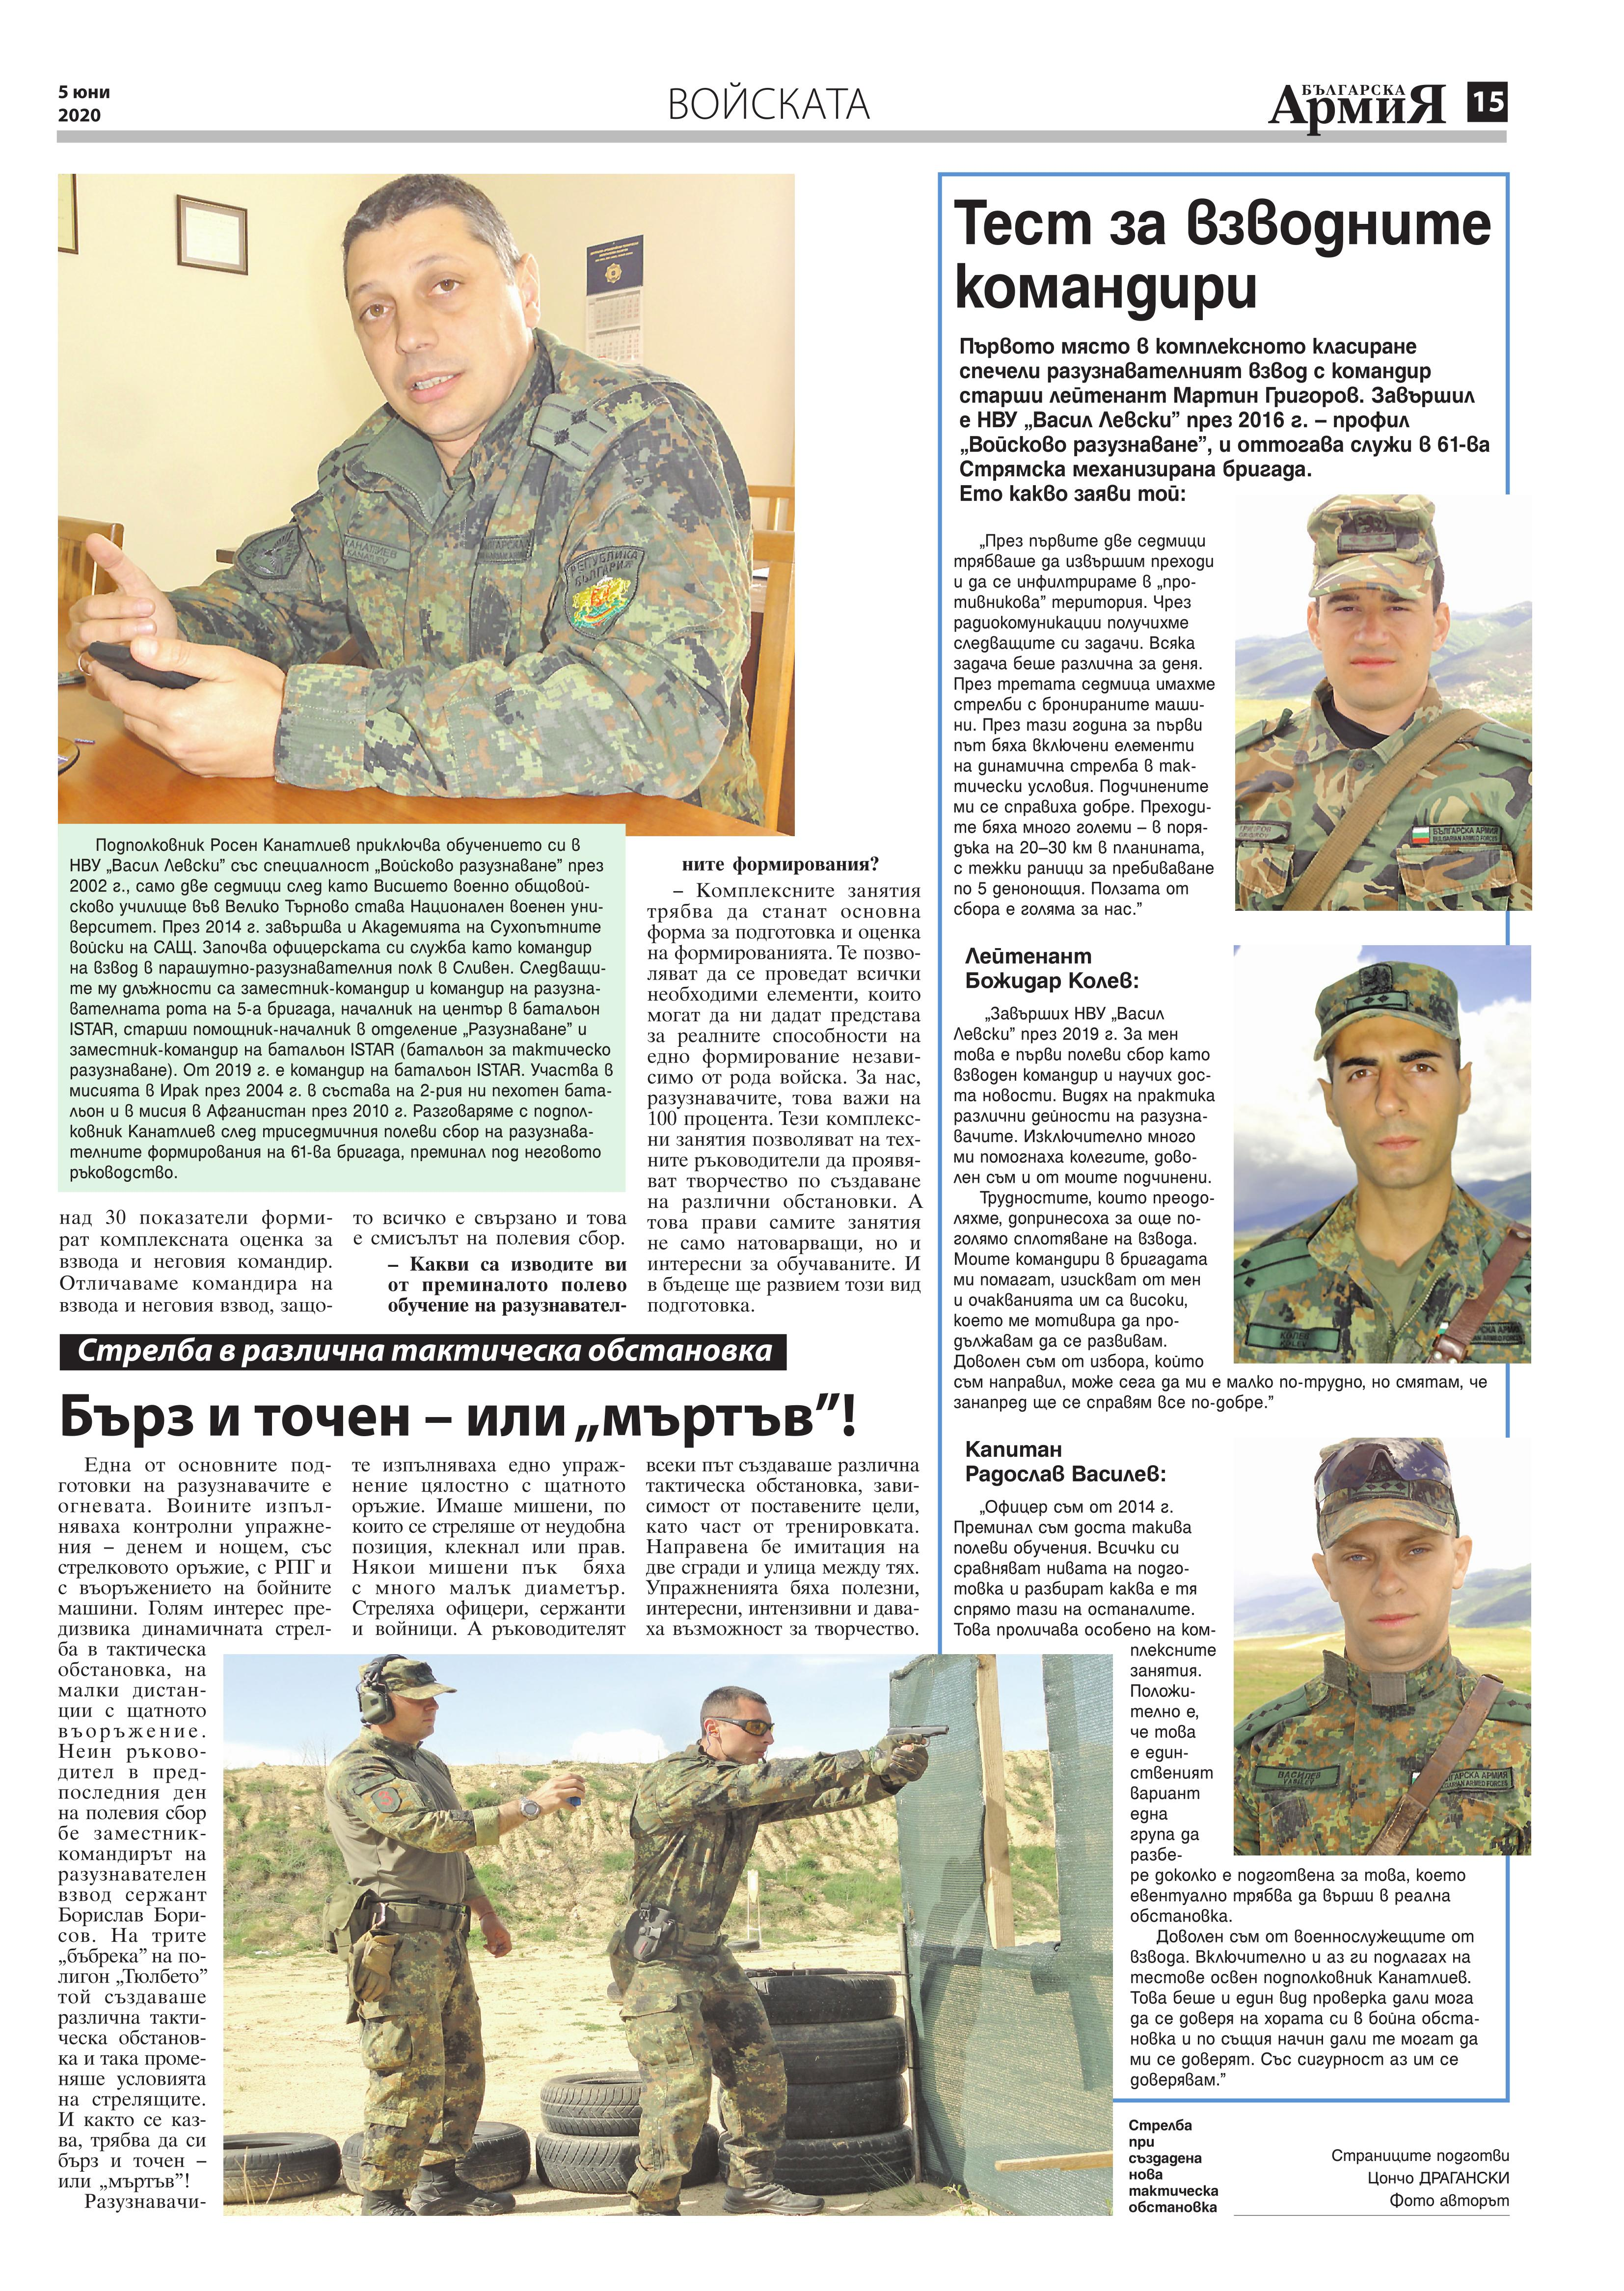 https://armymedia.bg/wp-content/uploads/2015/06/15.page1_-142.jpg